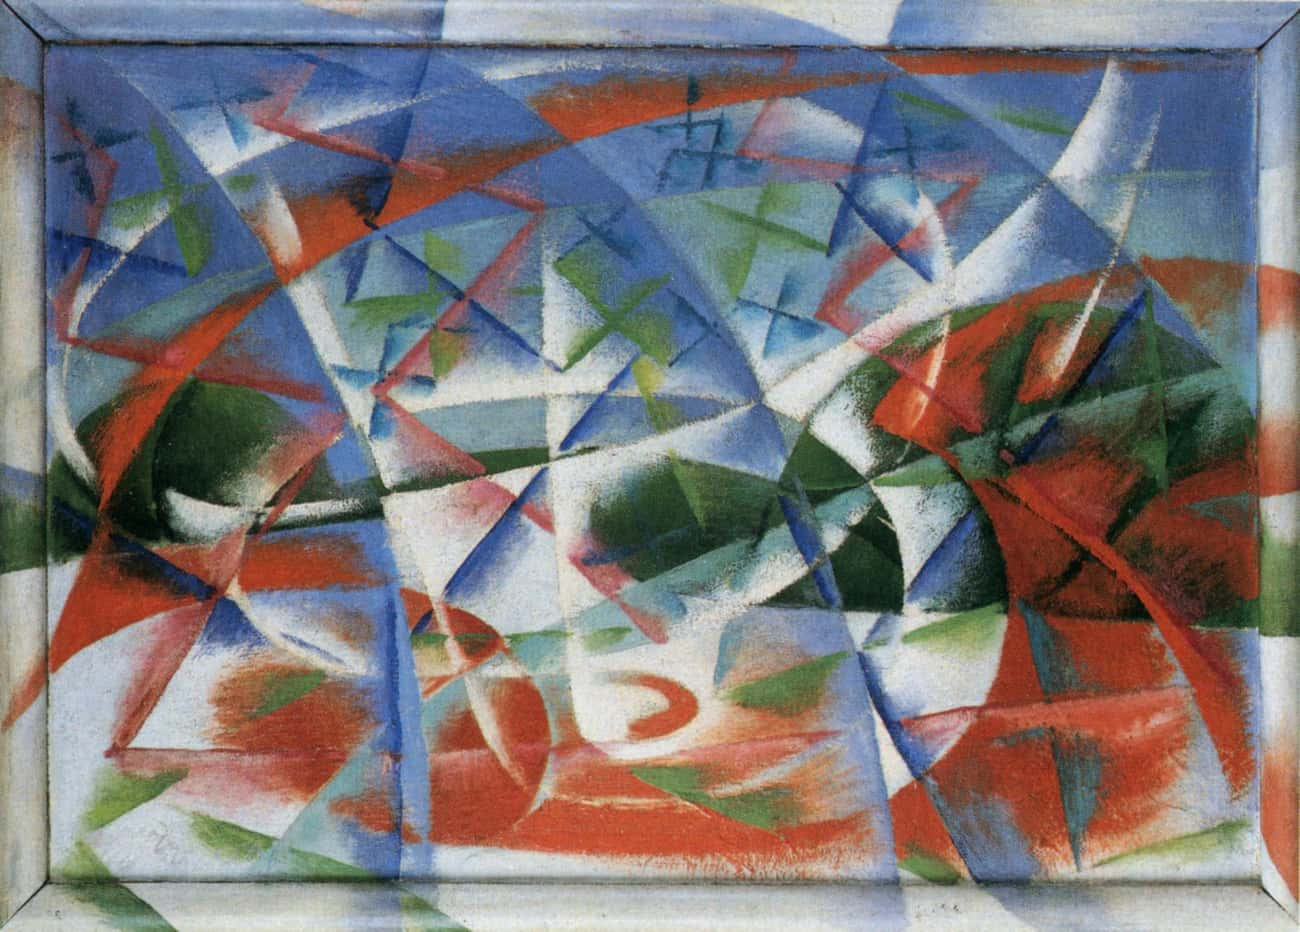 Abstract Speed + Sound is listed (or ranked) 1 on the list Famous Futurism Artwork